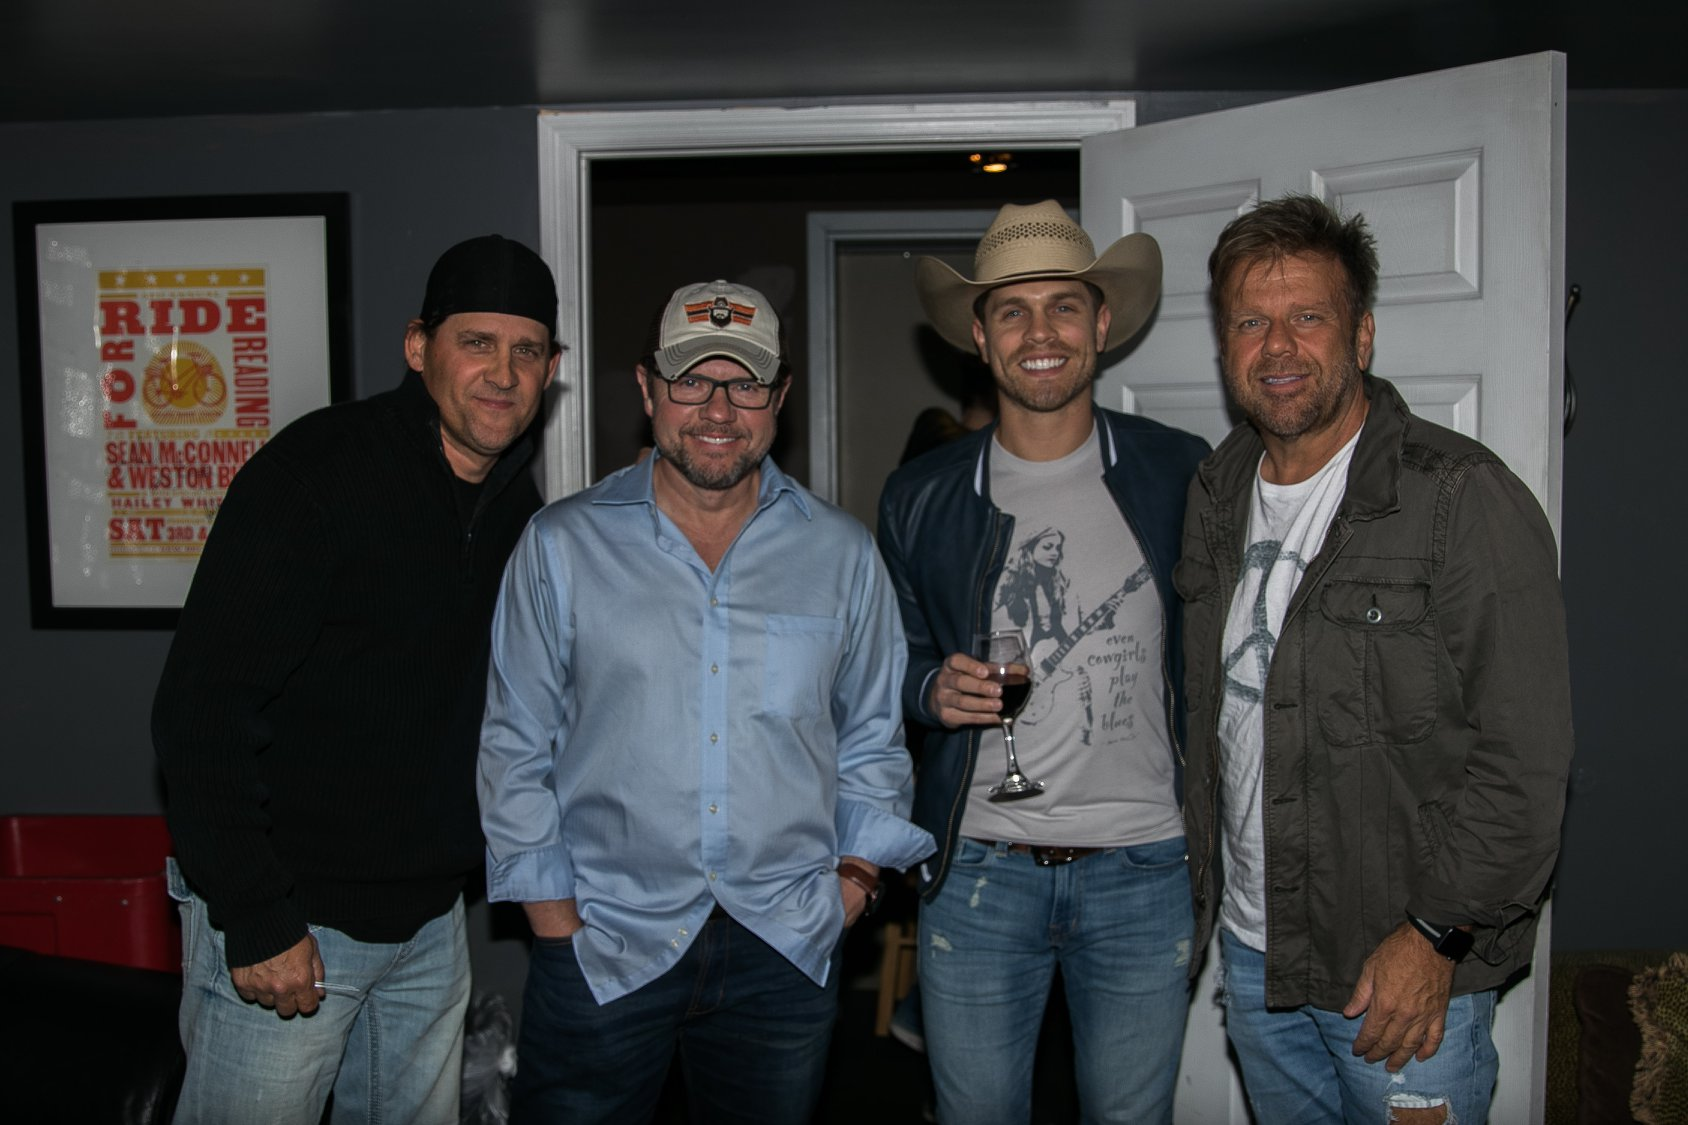 Dustin Lynch, Lee Thomas Miller & More Play Their Hits at Tin Pan South 2018